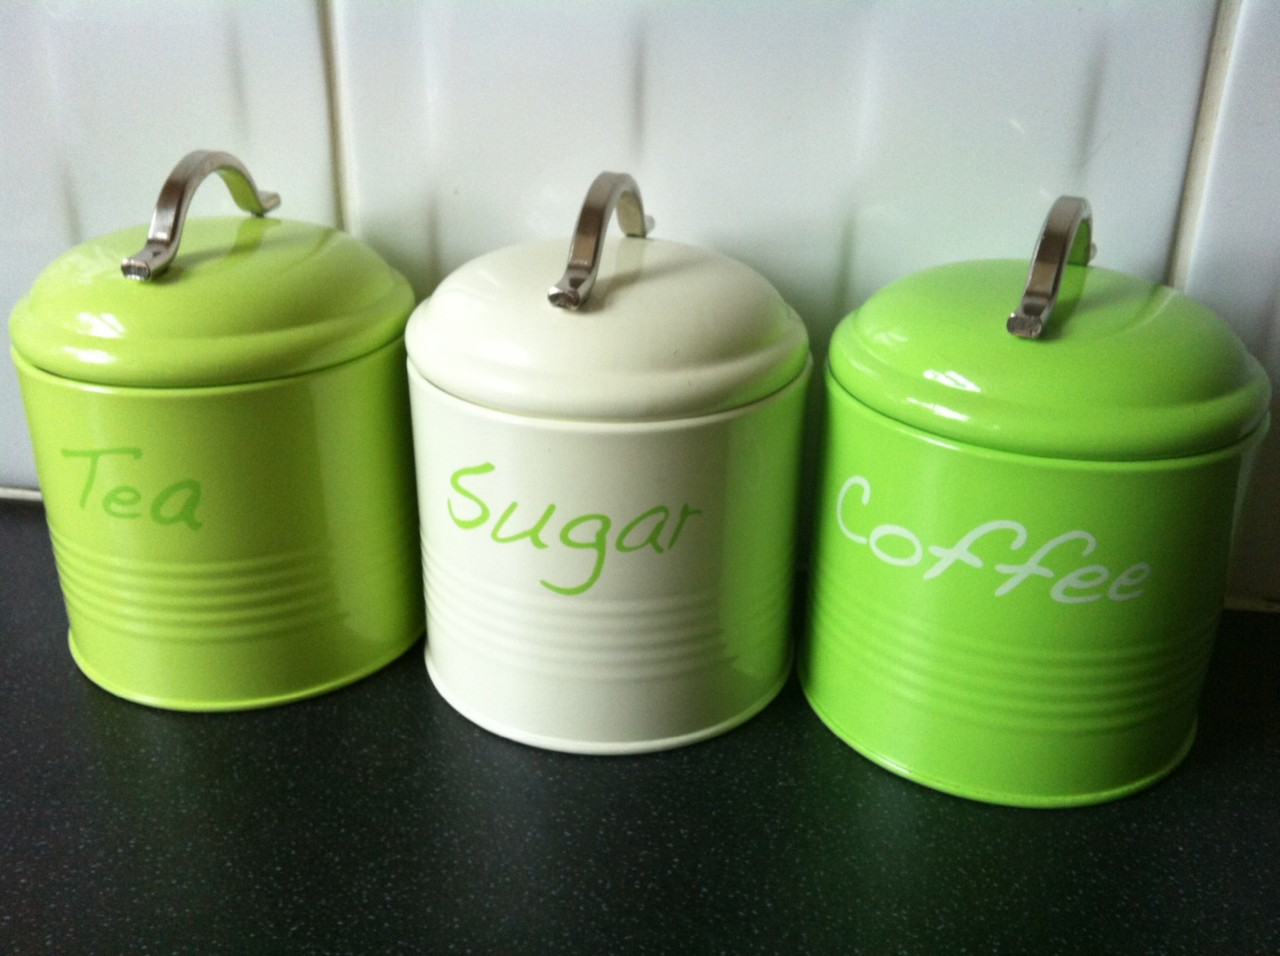 Our pretty retro design canisters will keep your tea, coffee and sugar